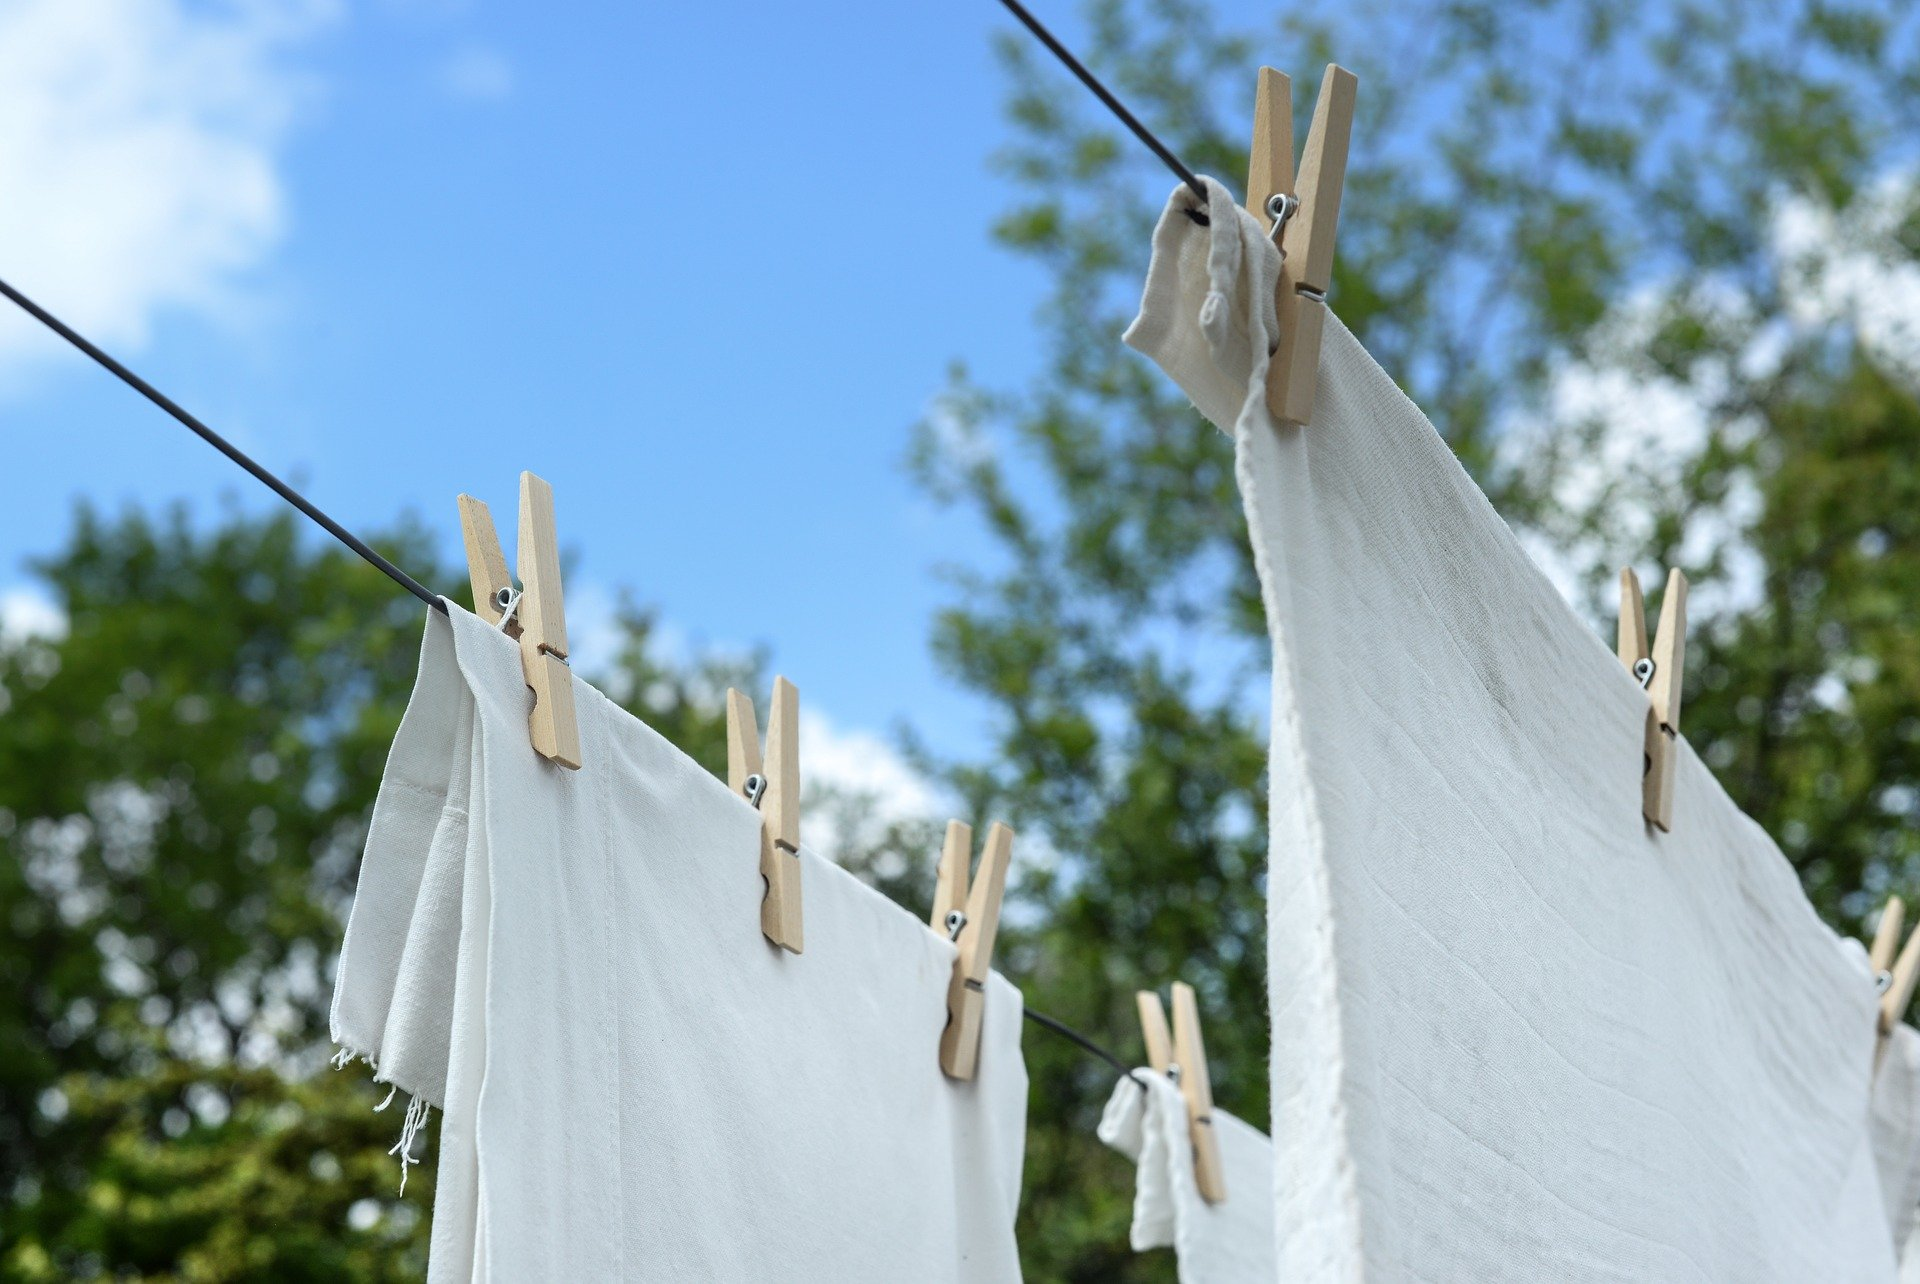 https://pixabay.com/photos/white-laundry-hanging-dry-clean-3395699/